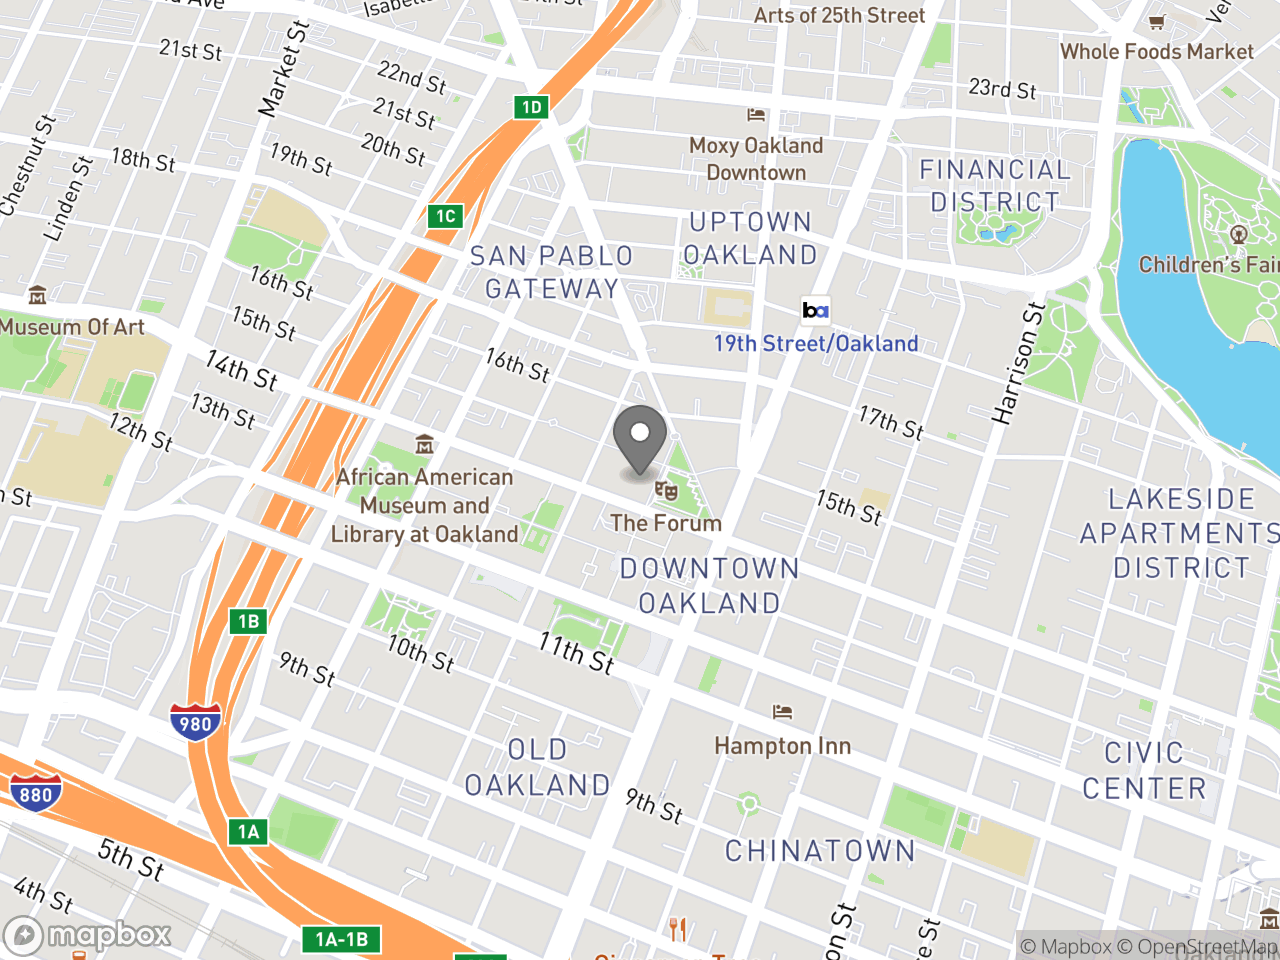 Map image for Mayor's Commission on Aging Meeting, located at 1 Frank H Ogawa Plaza in Oakland, CA 94612